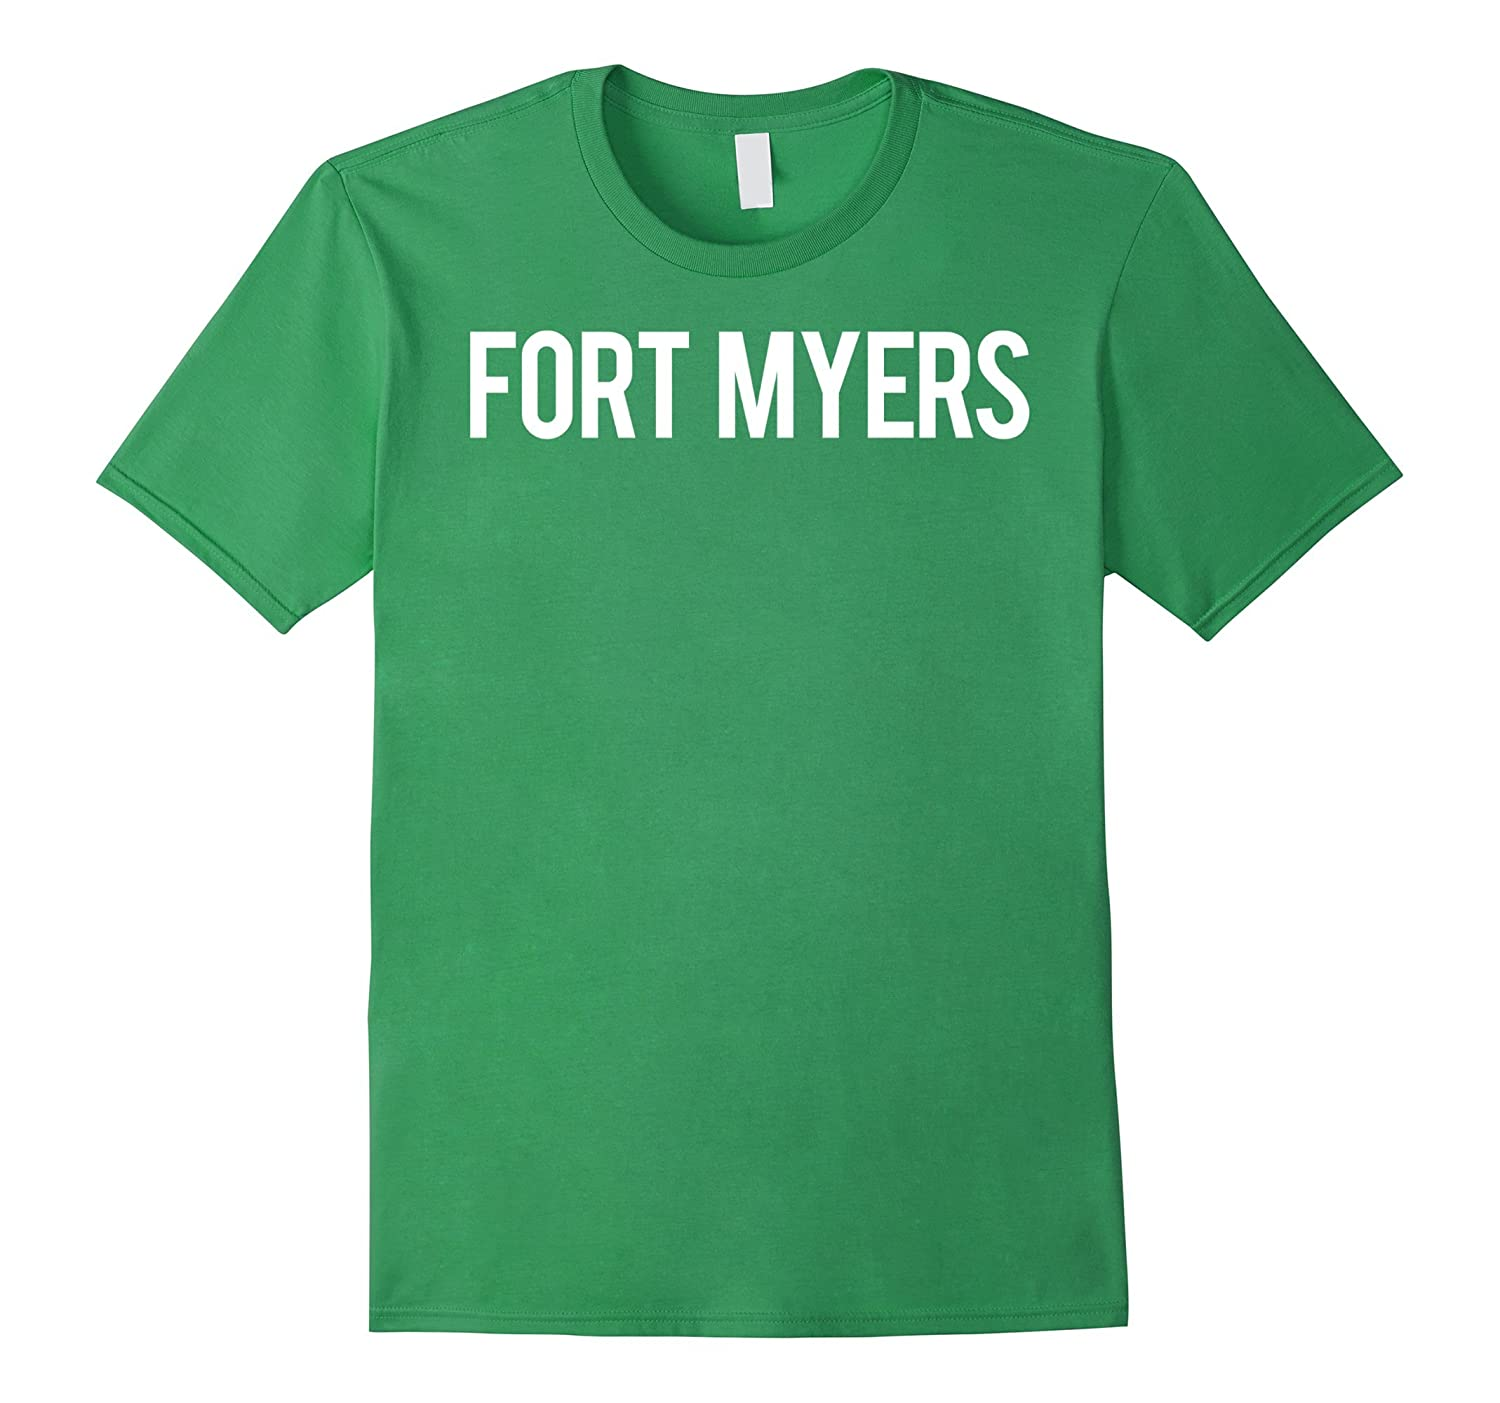 Fort Myers T Shirt Cool Florida FL city funny cheap gift tee